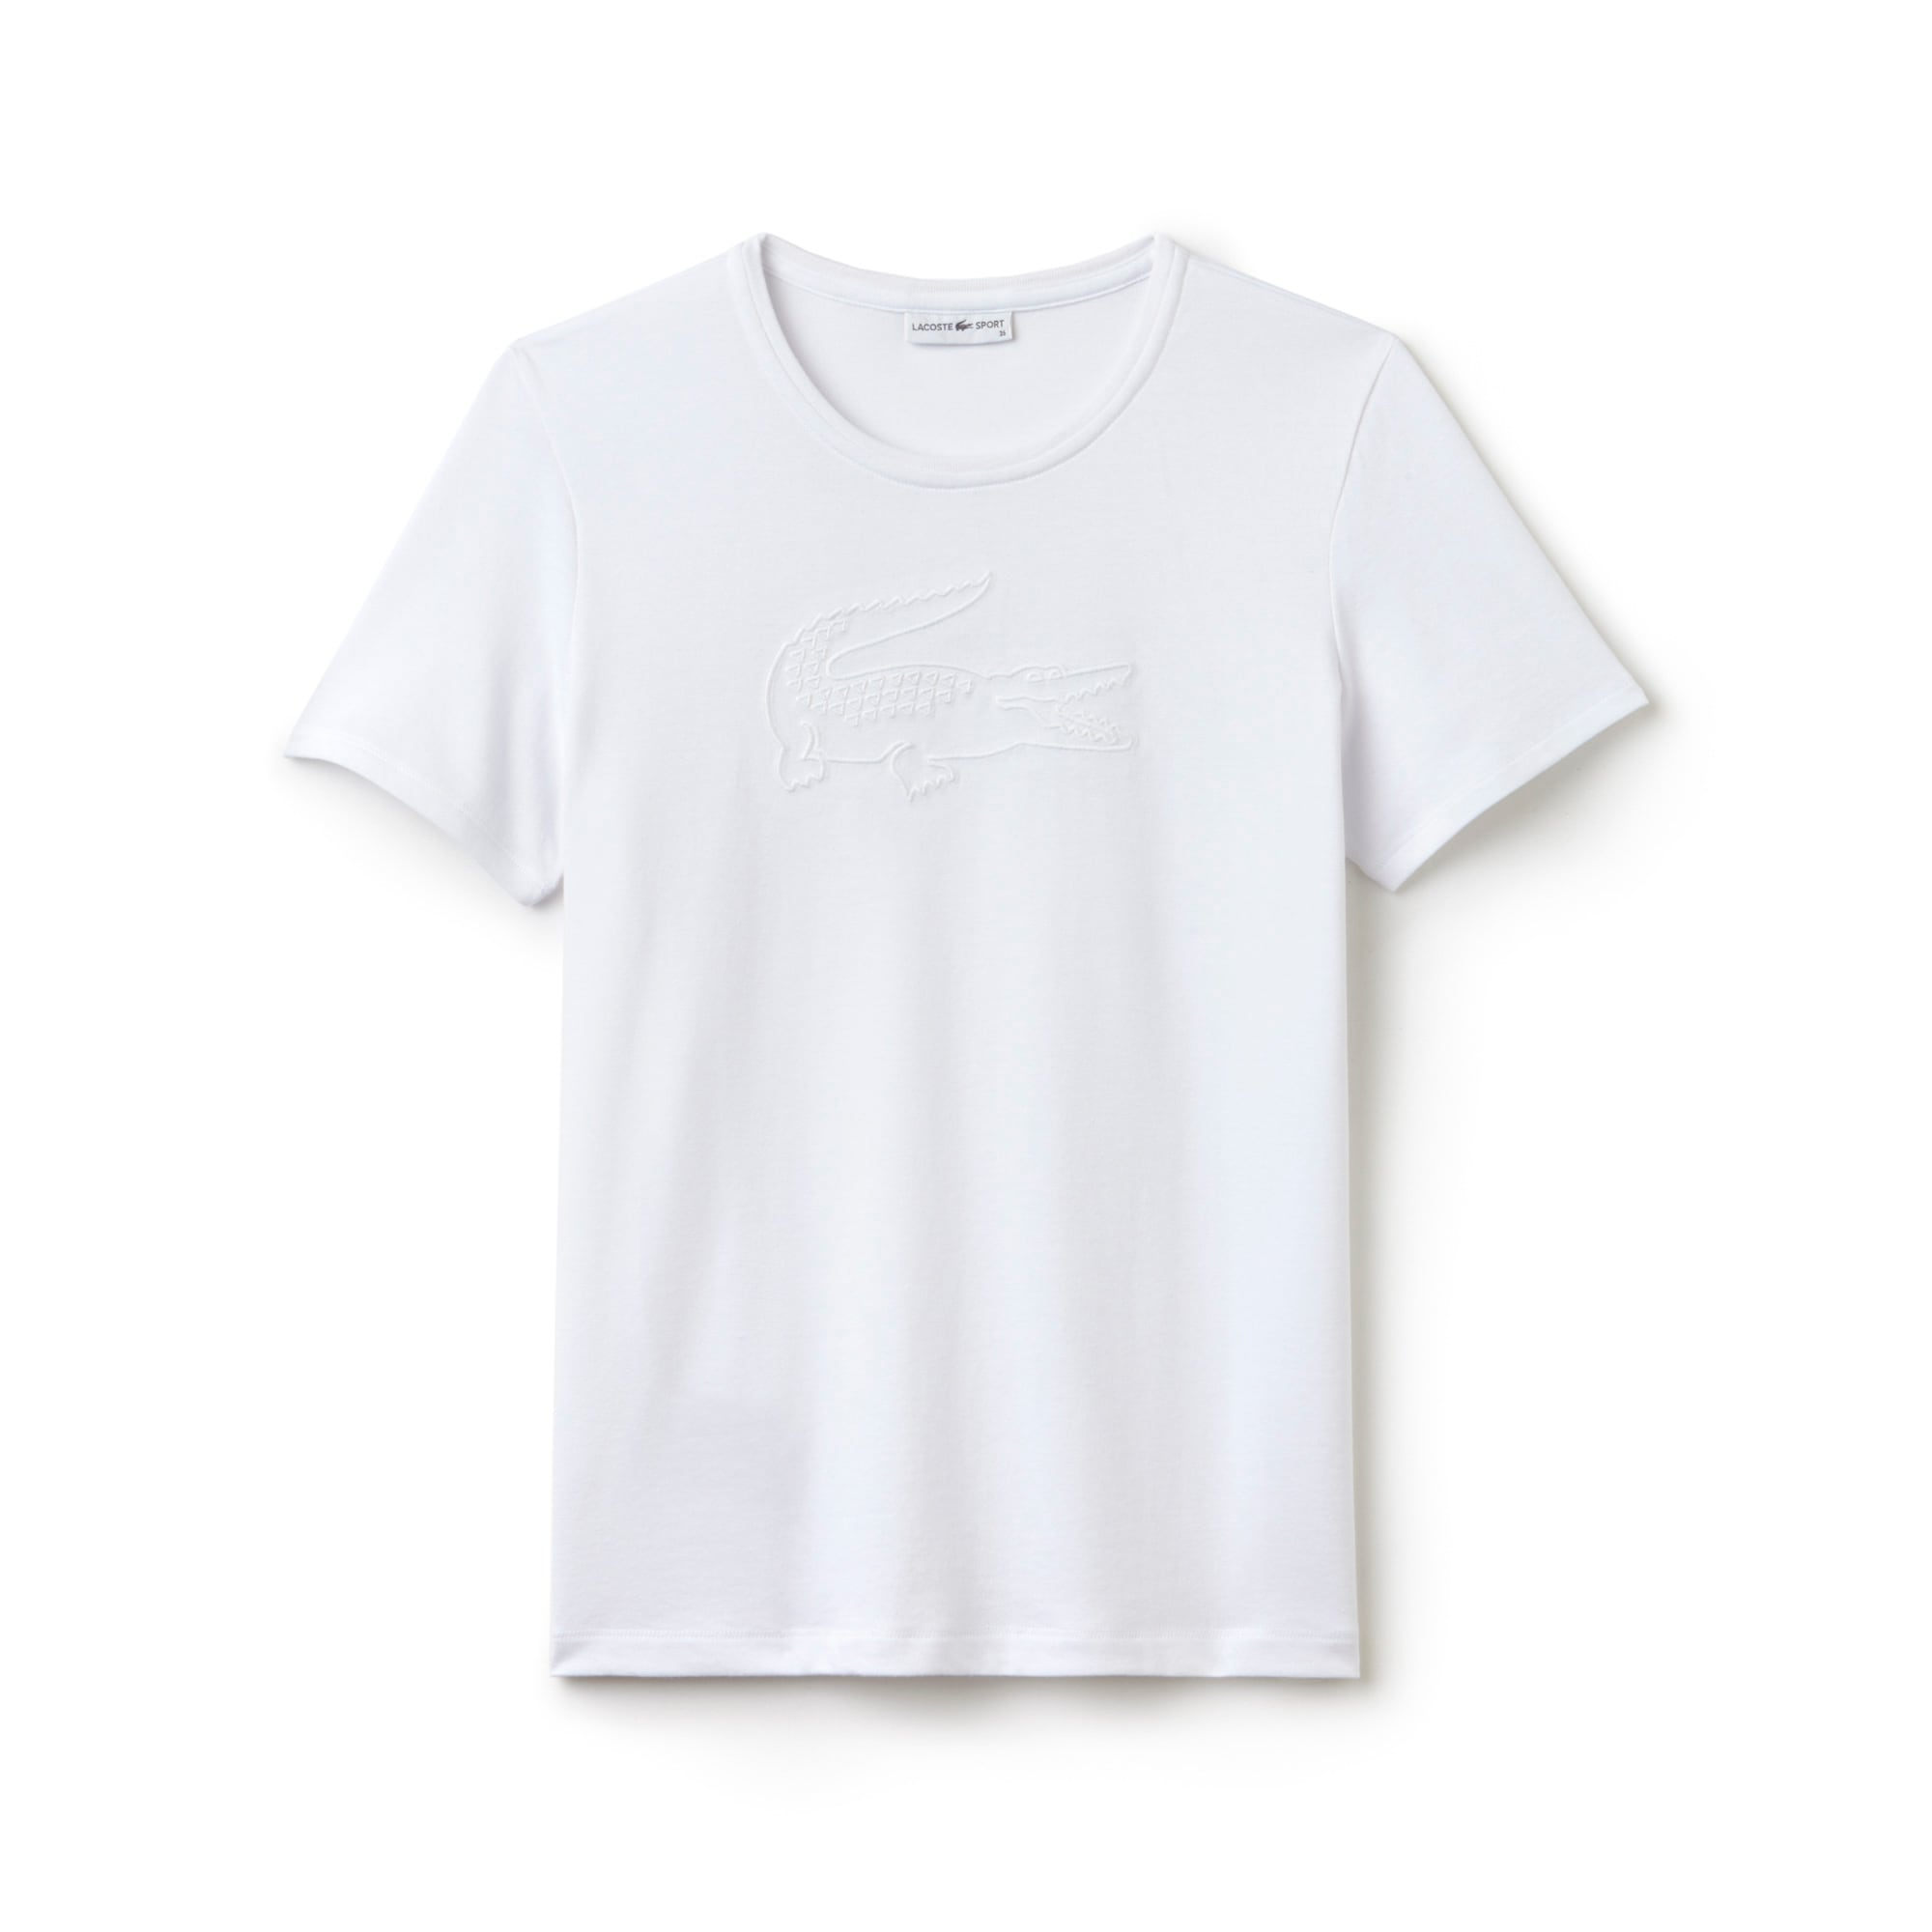 Women's  SPORT Tennis Croc Embroidery Tech Jersey T-shirt